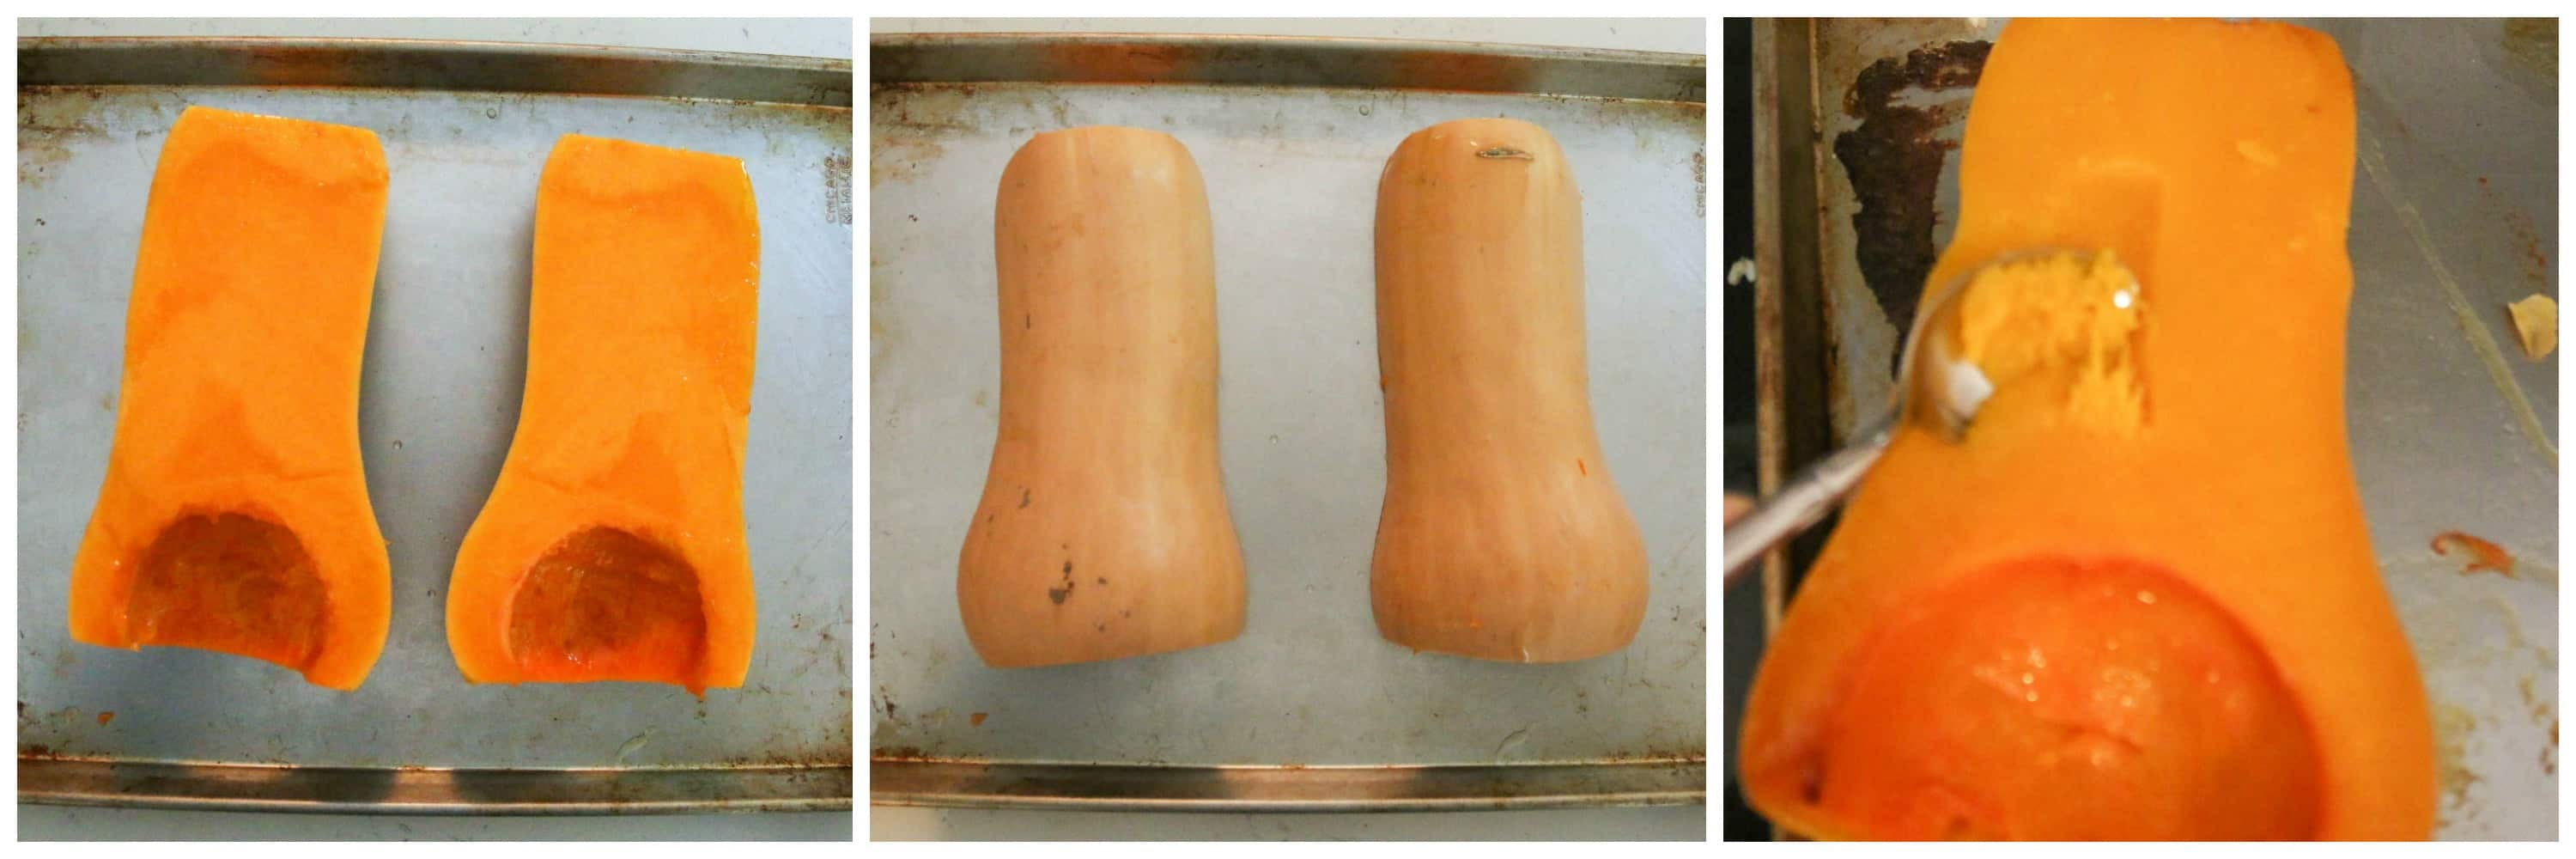 squash cut in half and on baking sheet and roasted